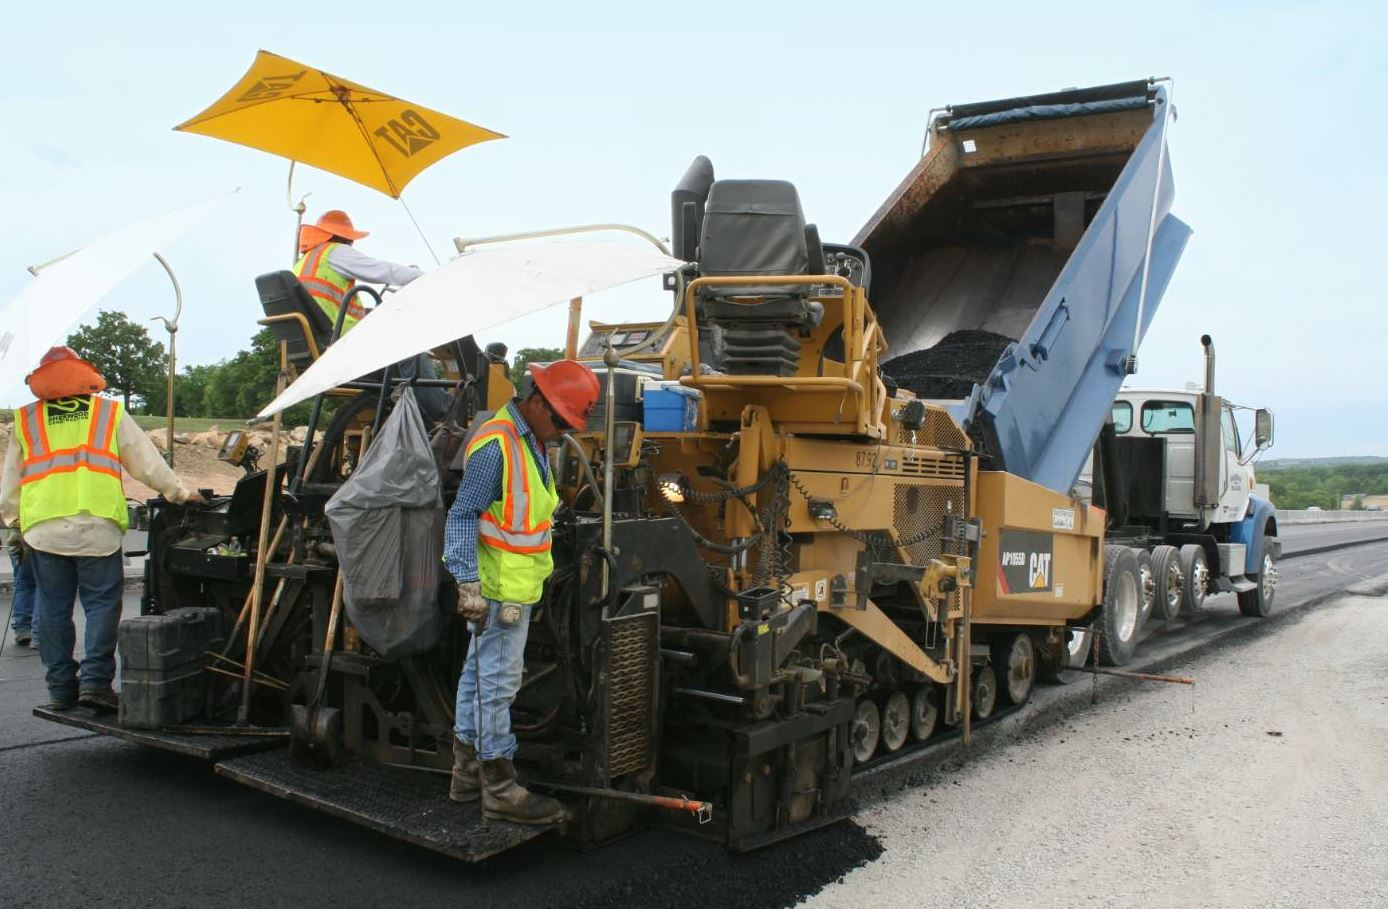 The Sherwood Construction team placed and compacted 10 inches of asphalt in three lifts on the Turner Turnpike project.